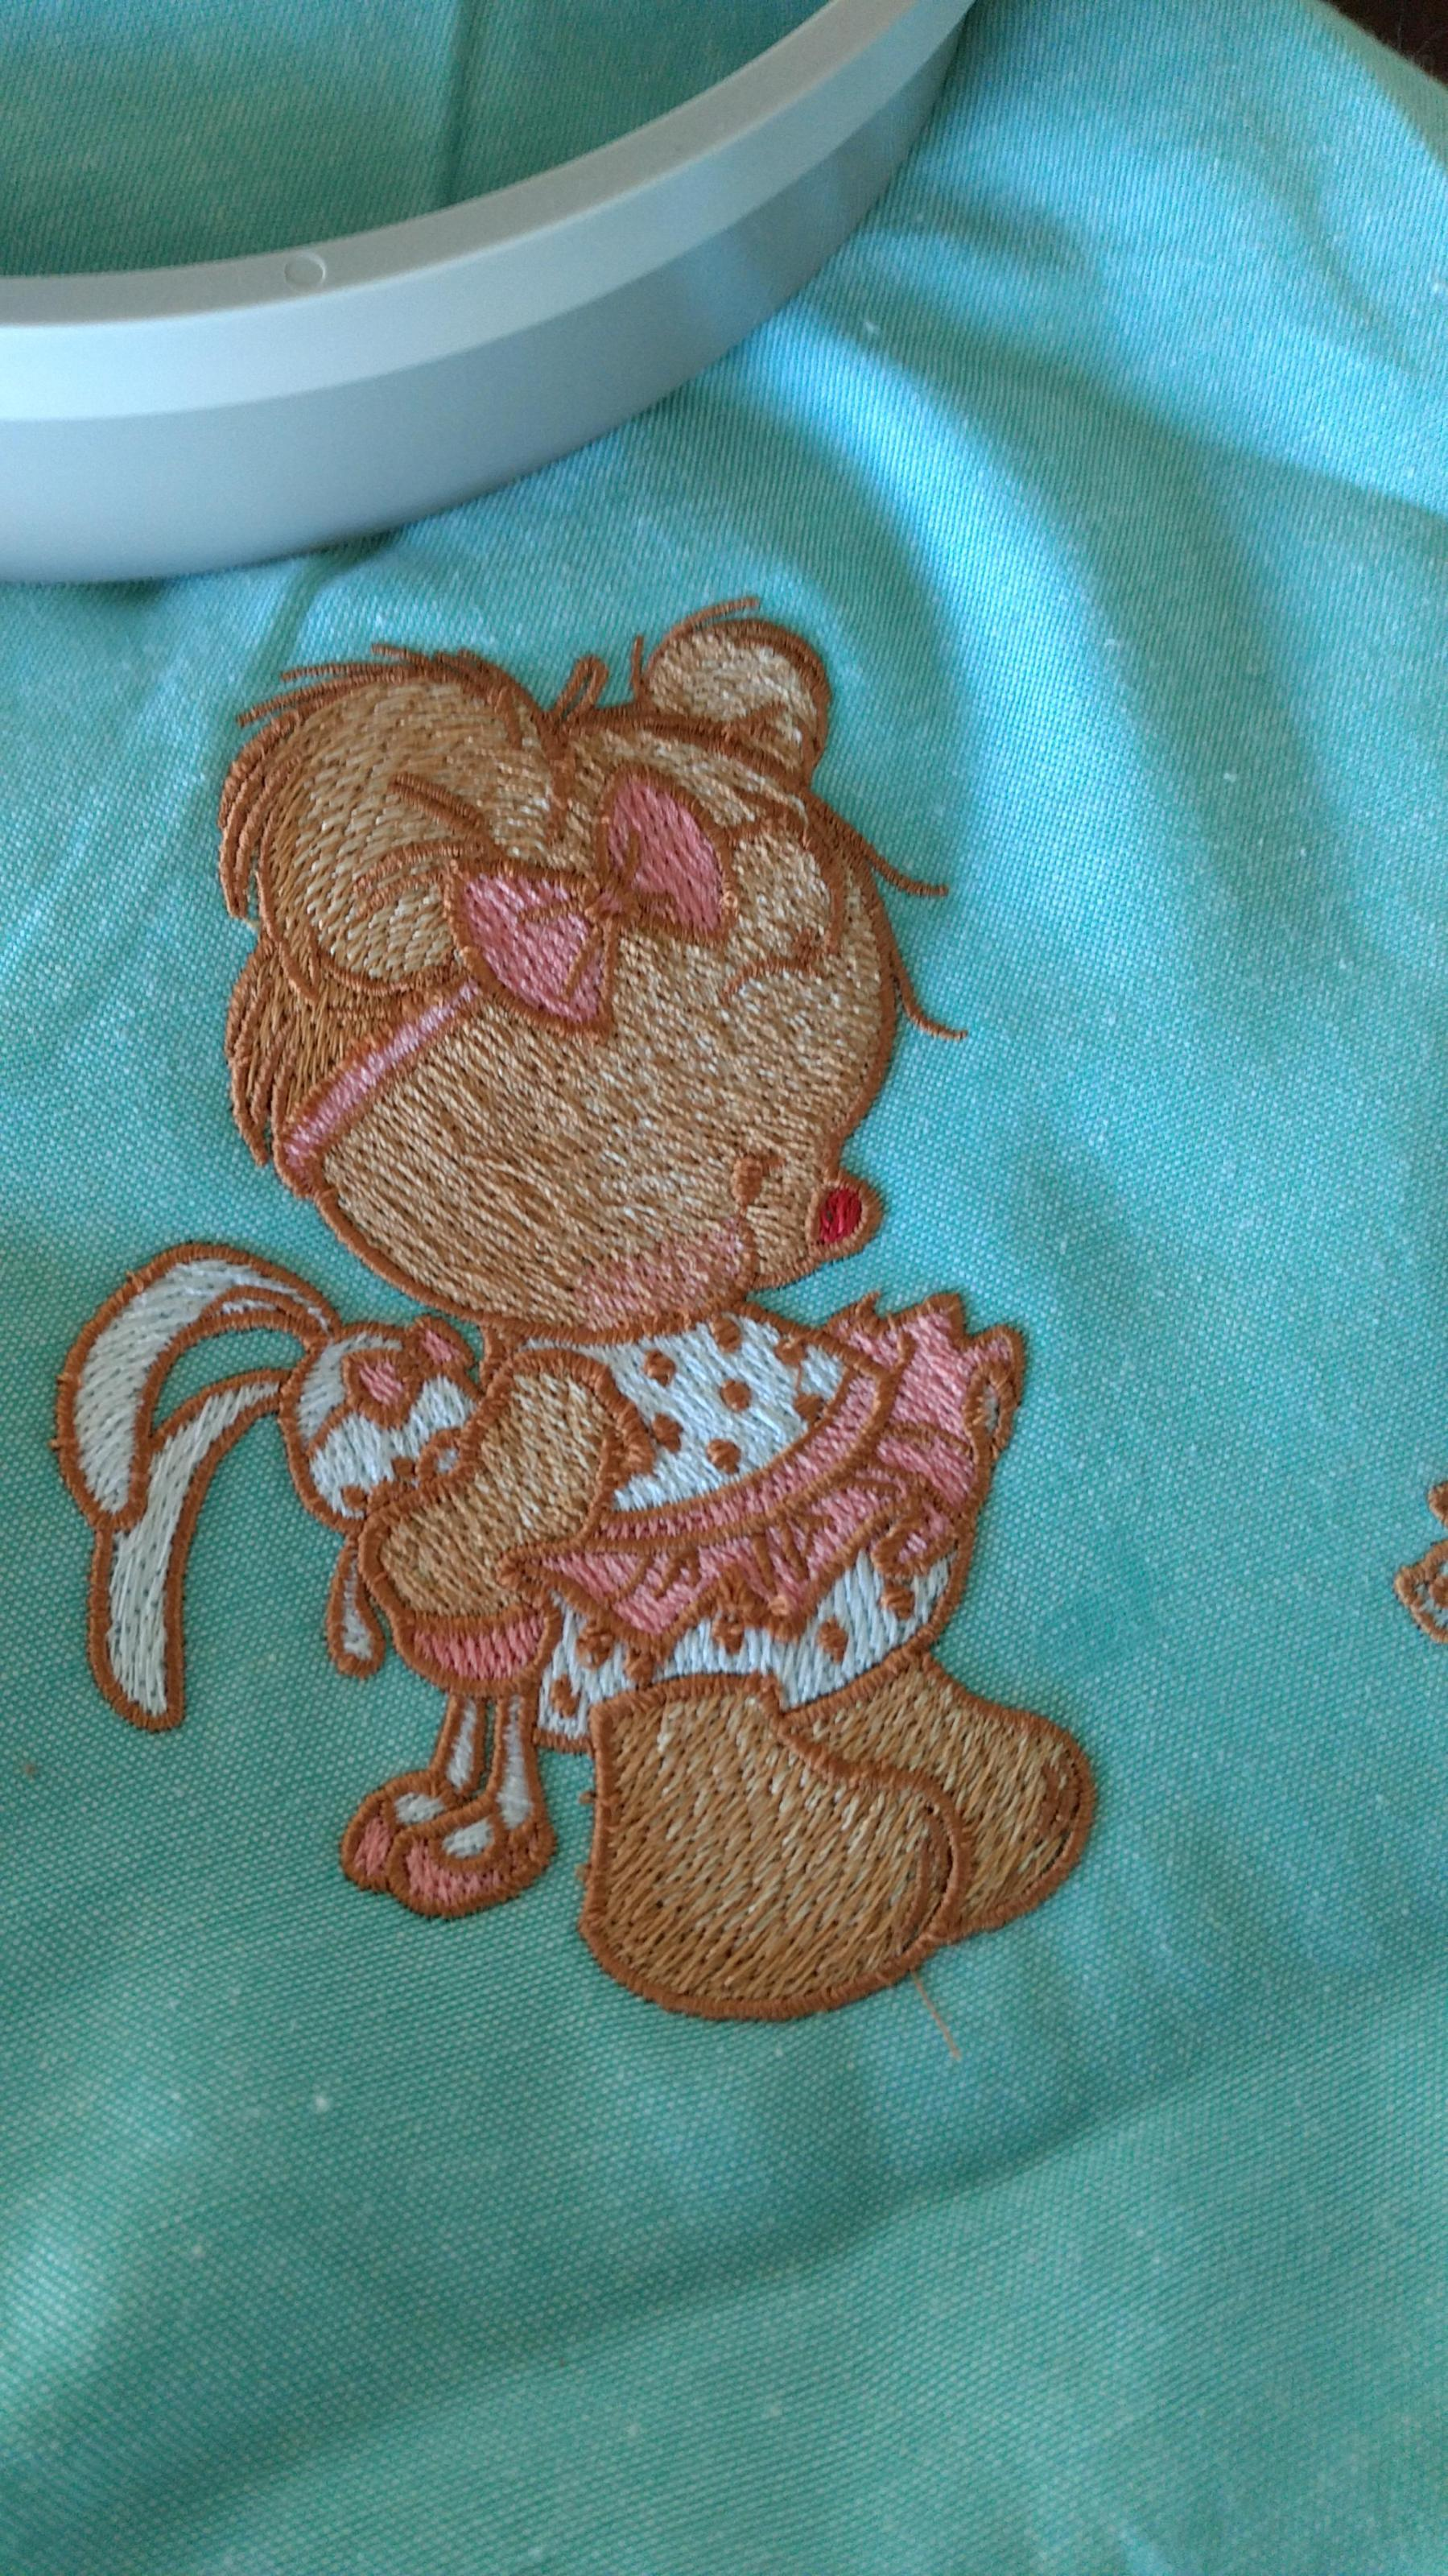 Fineshed process embroidering Teddy bear with bunny toy design